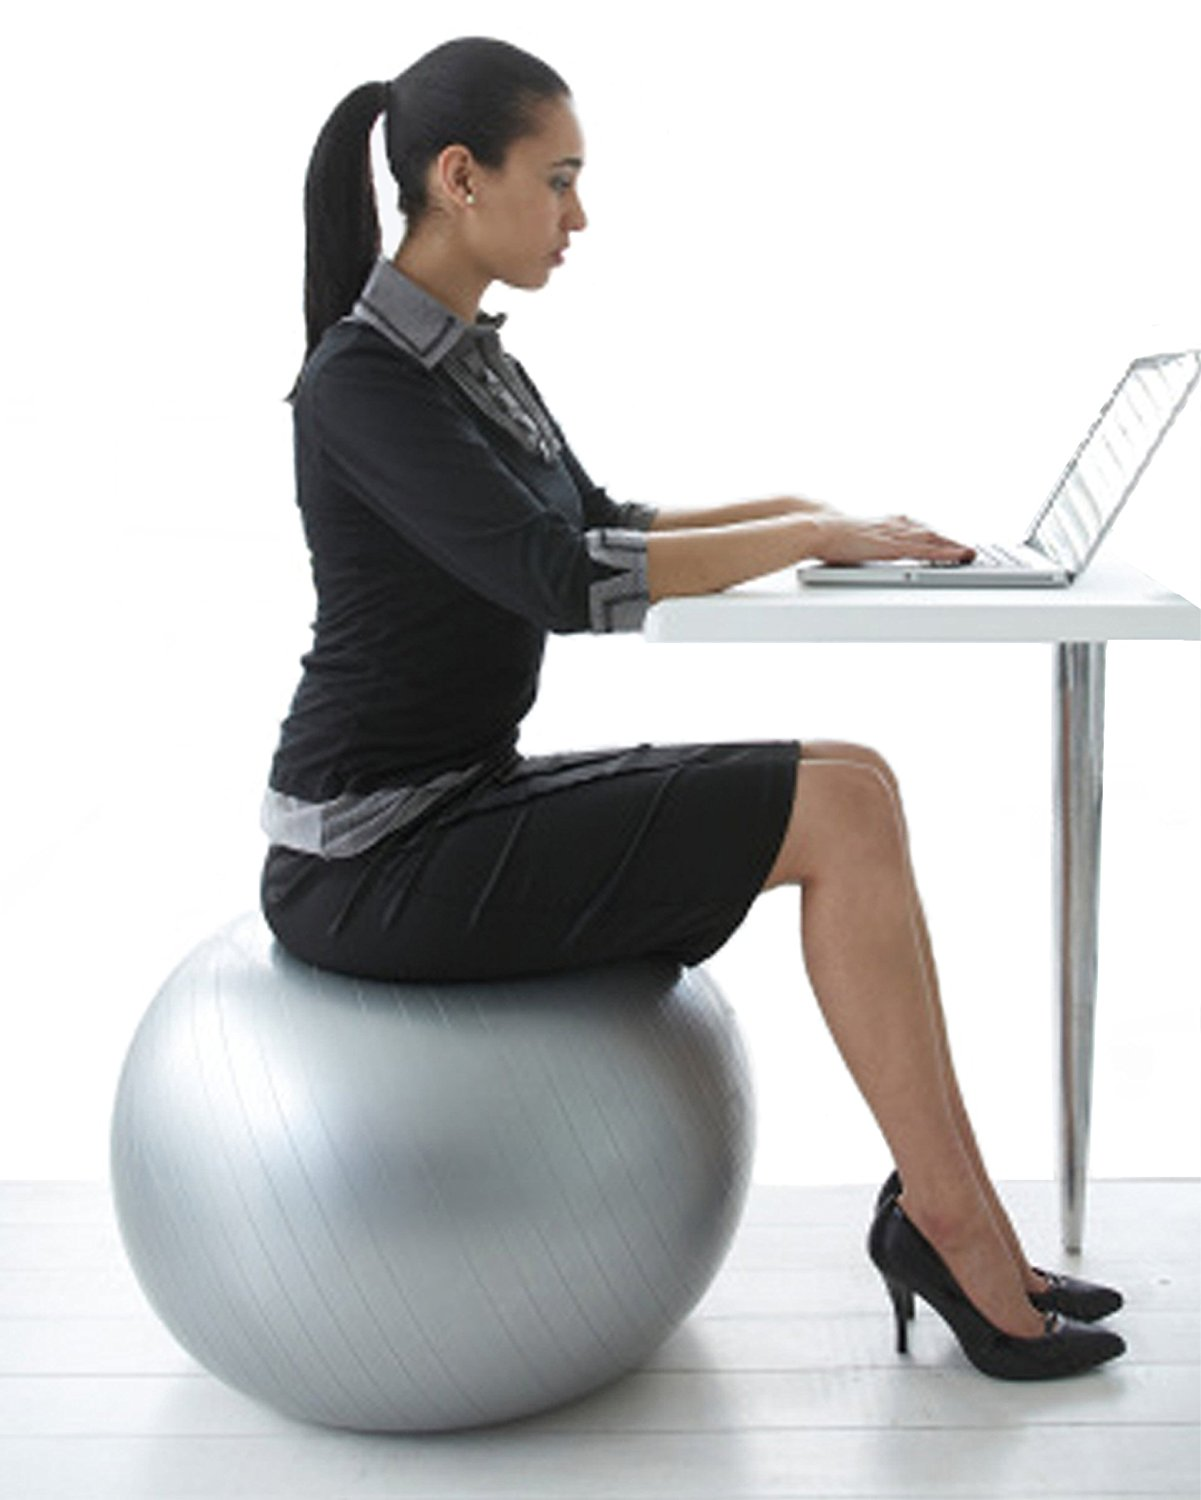 calcore exercise ball chair review buyer s guide august 2018